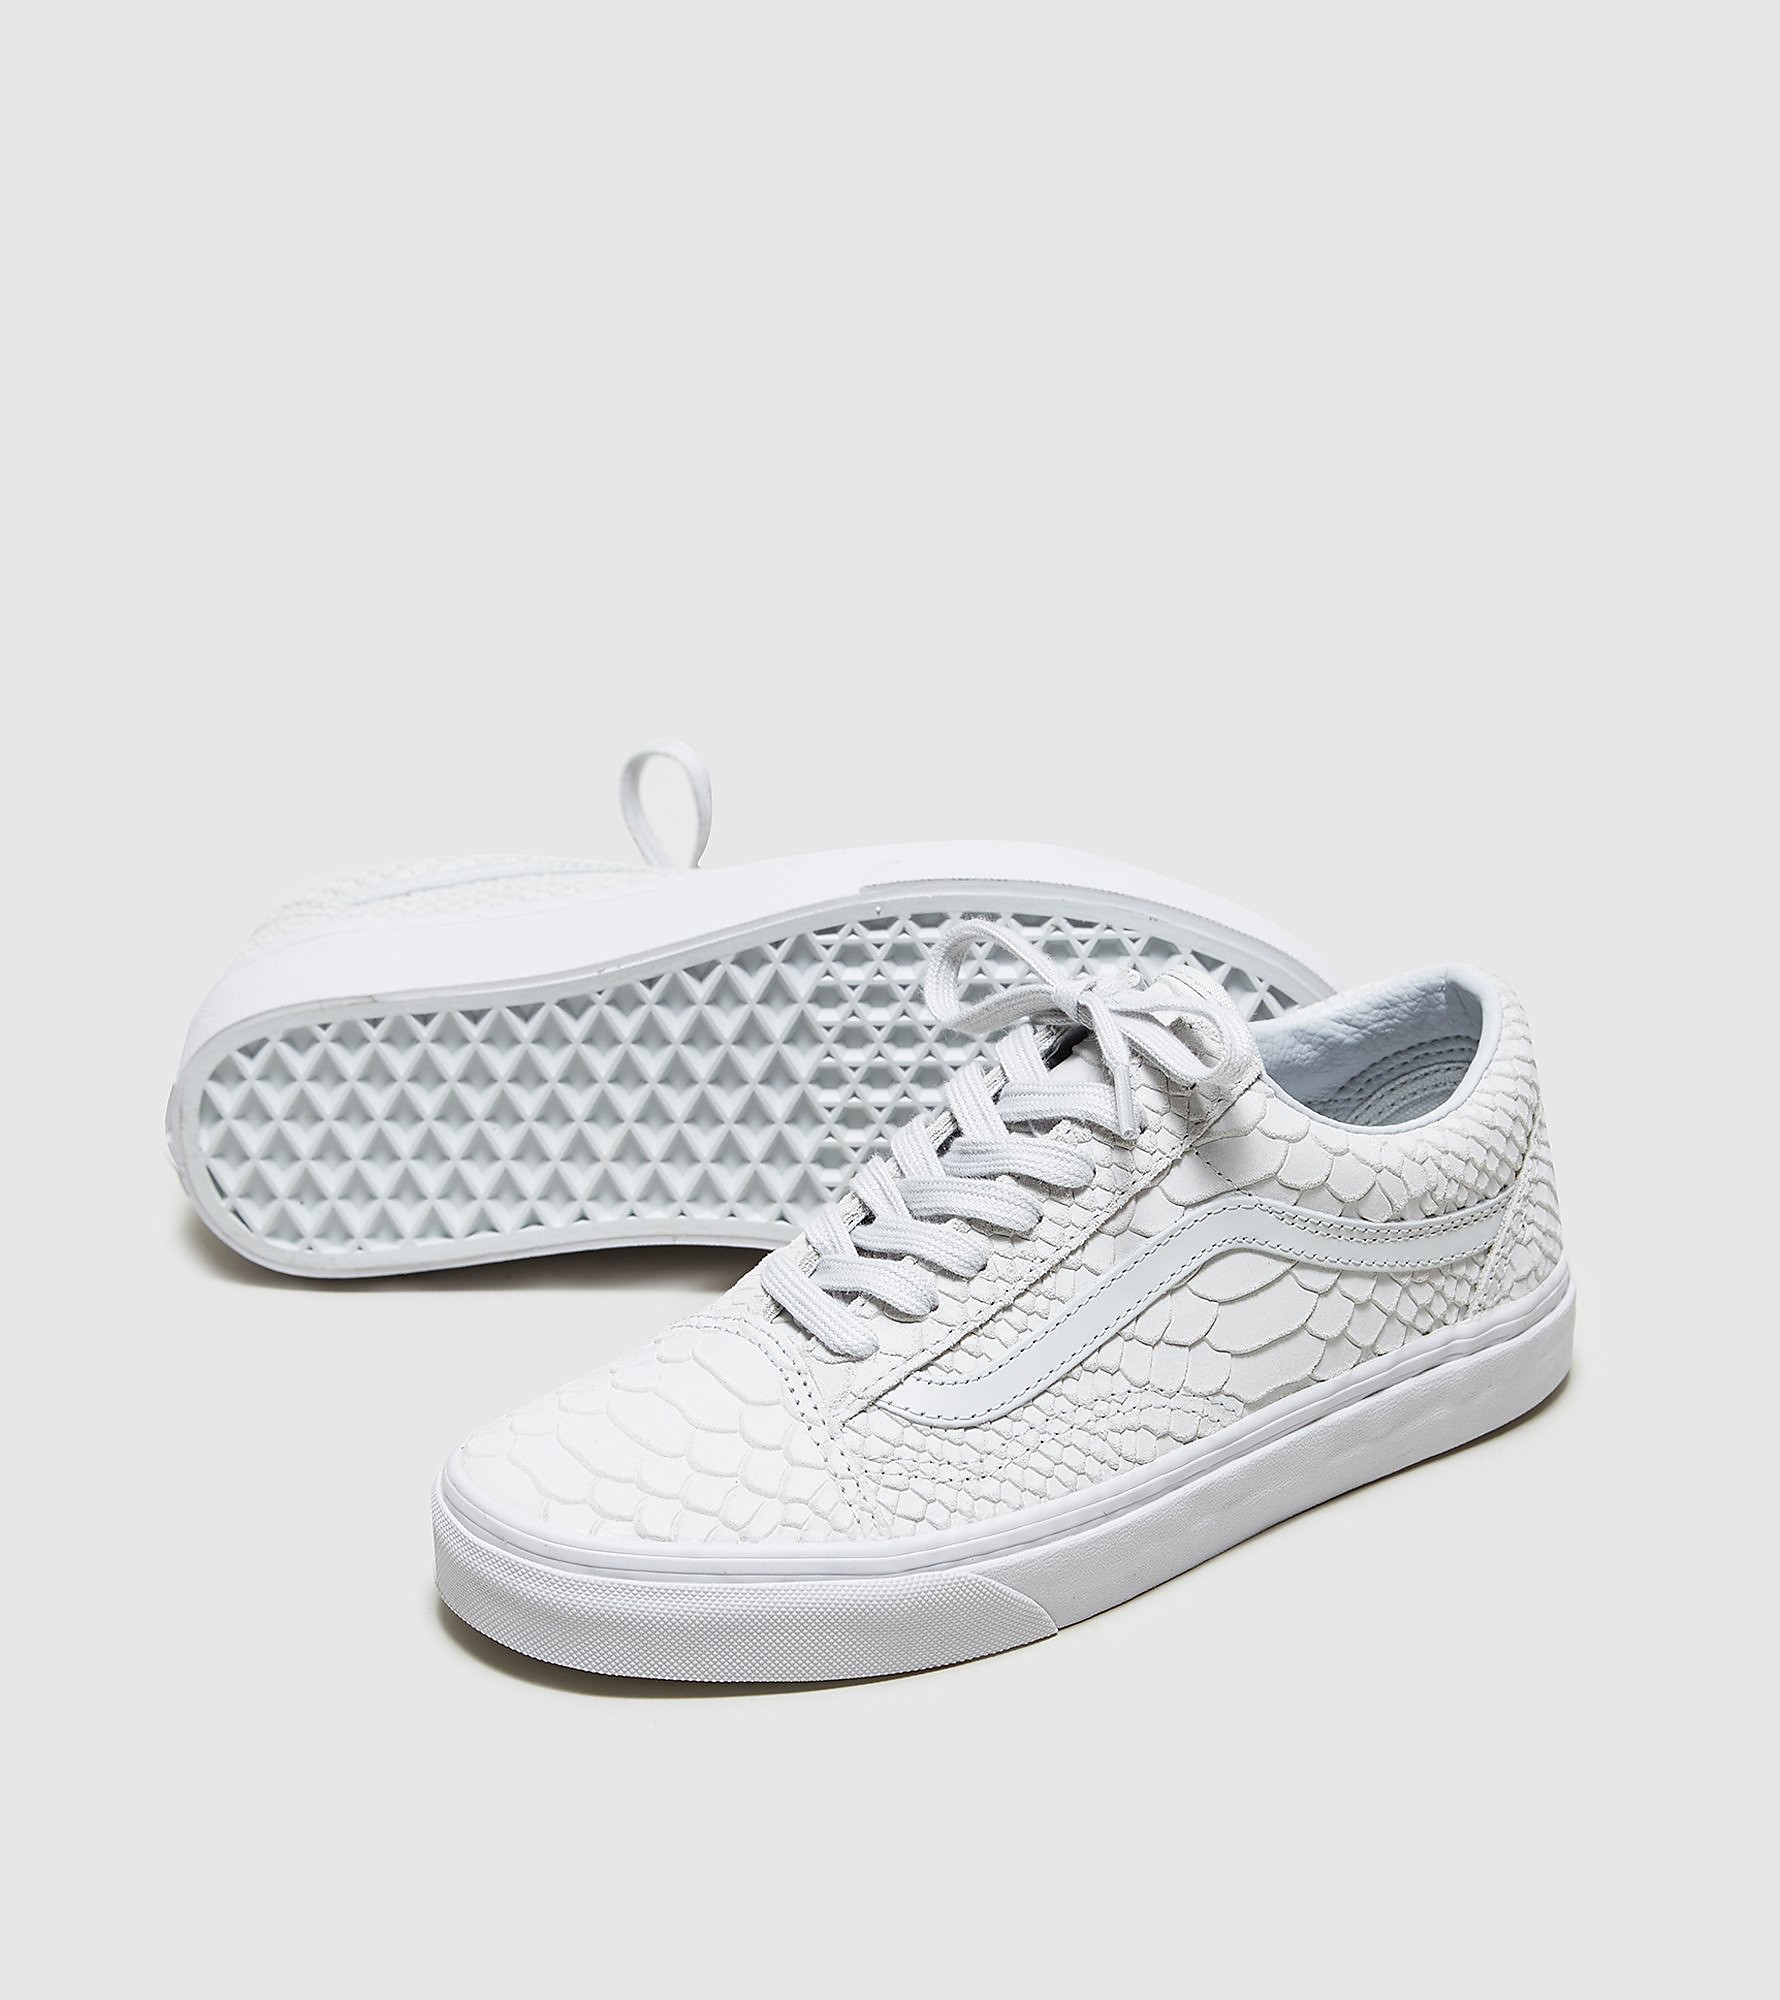 Vans Old Skool Snake DX Women's